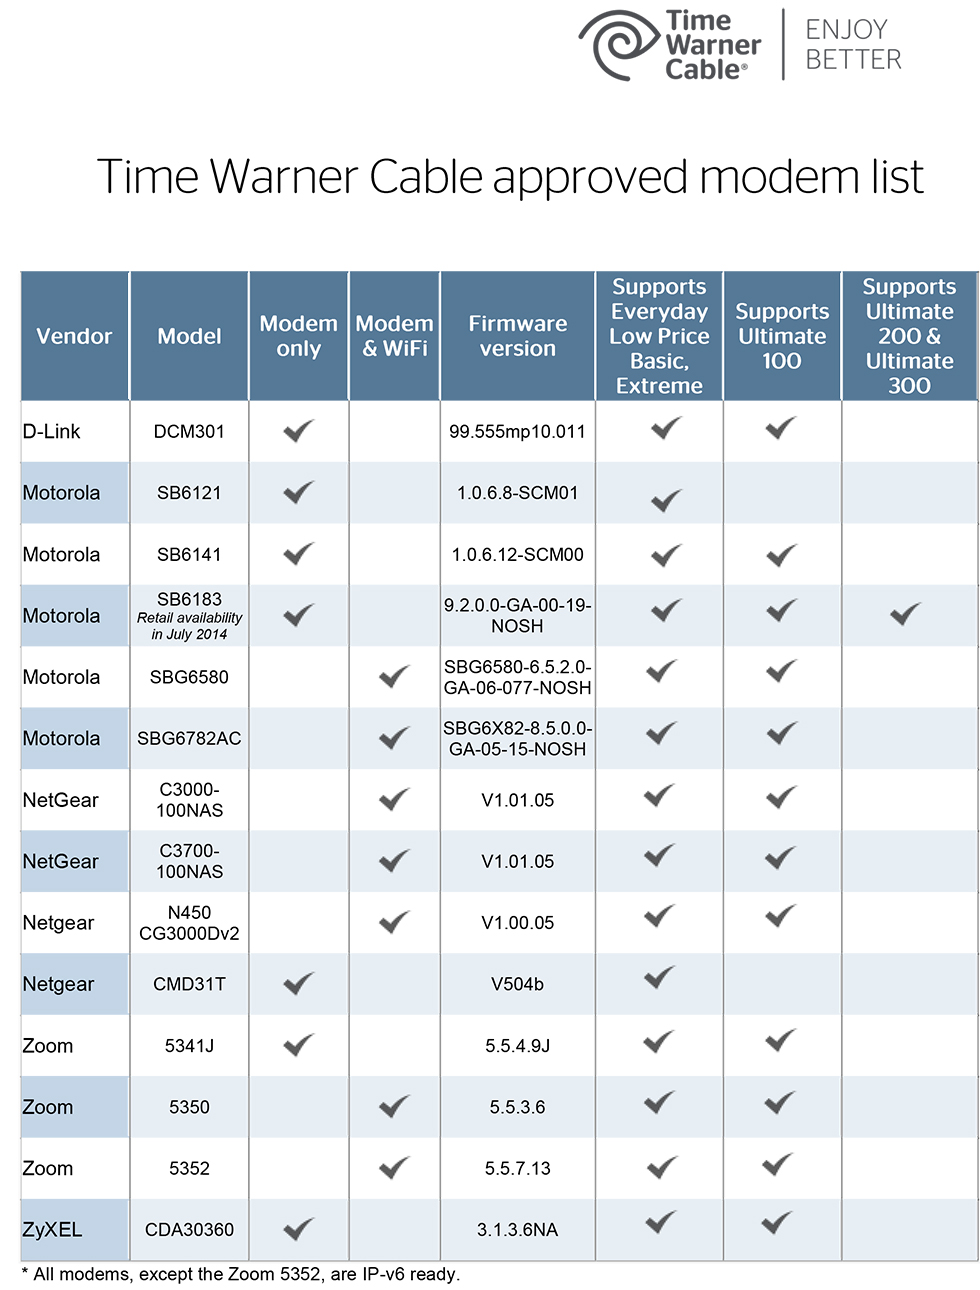 time warner cable rolling out 300 and 200 mbps service july 7th